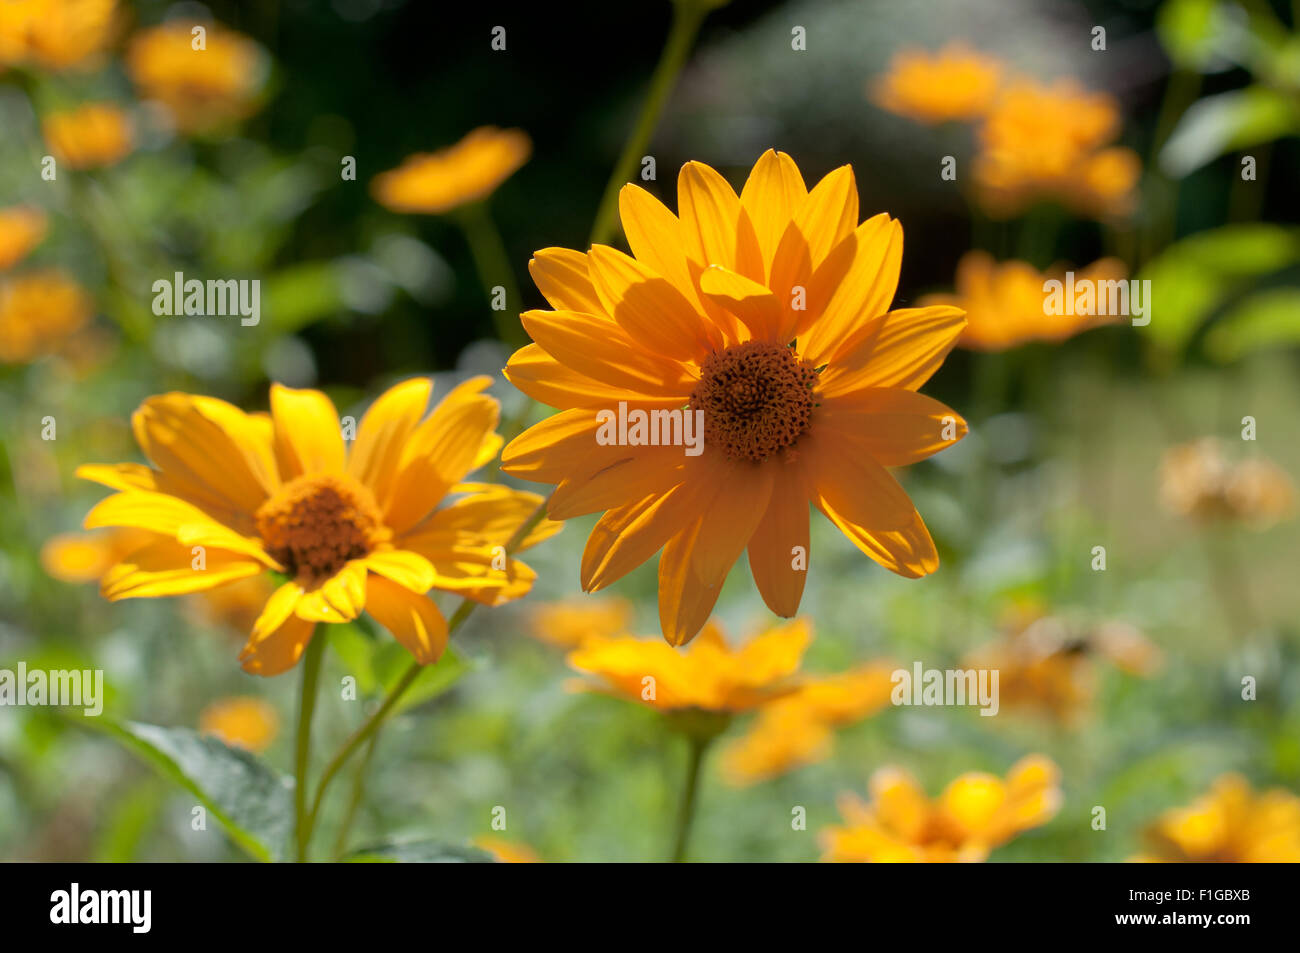 Yellow daisy flowers in beautiful August sunlight in a farmers' garden. - Stock Image